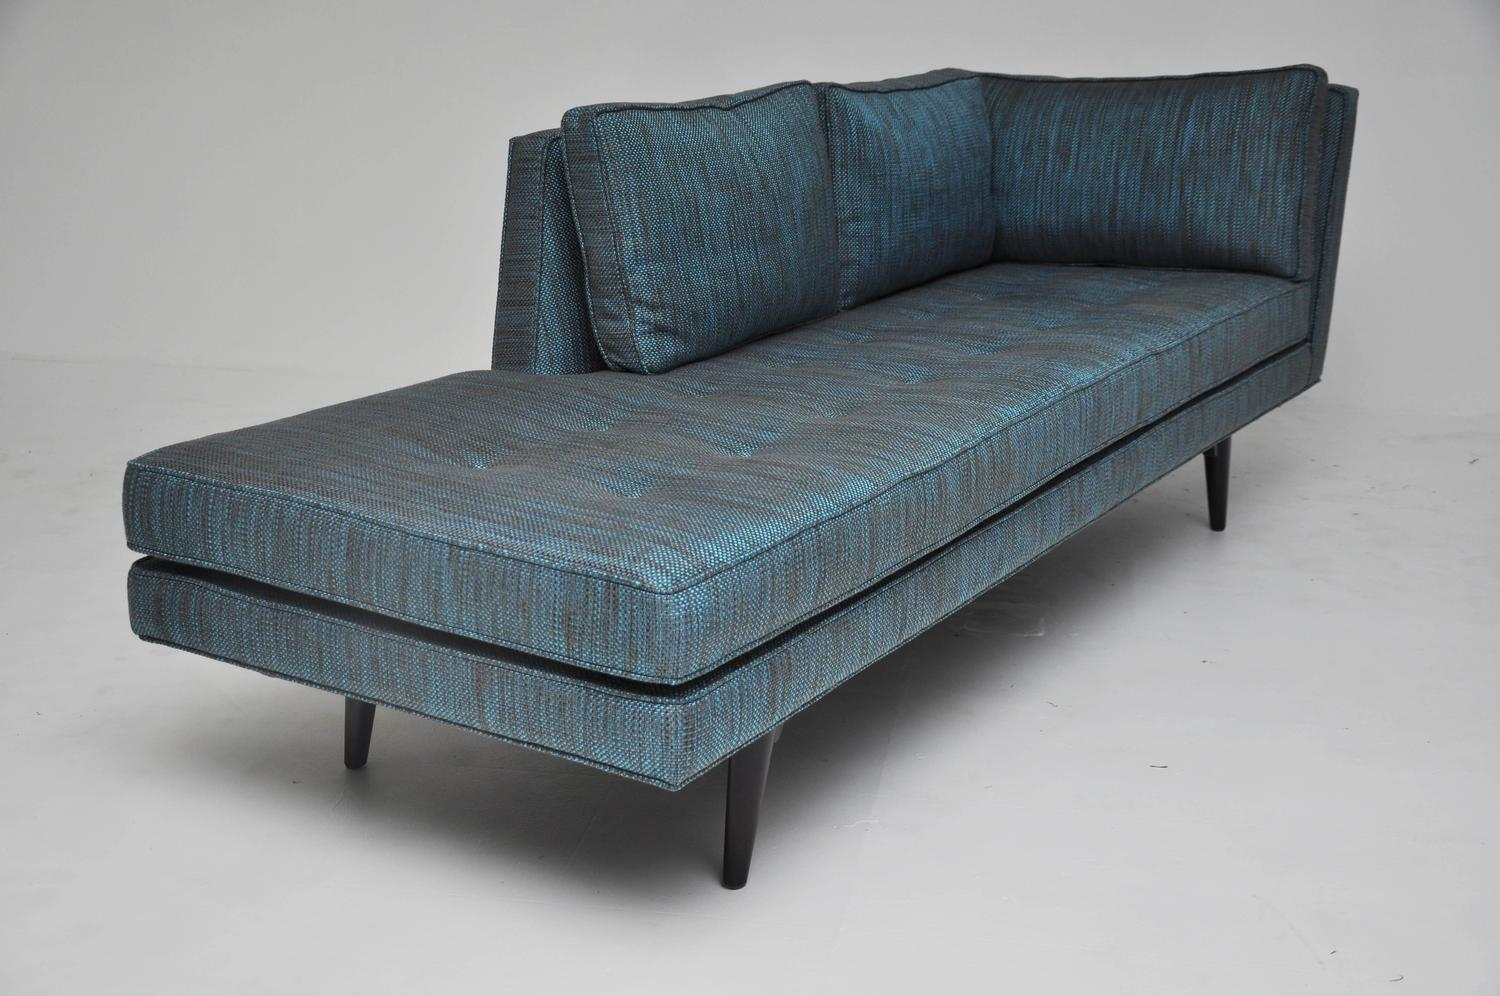 Dunbar chaise lounge by edward wormley at 1stdibs for Chaise lounge chicago